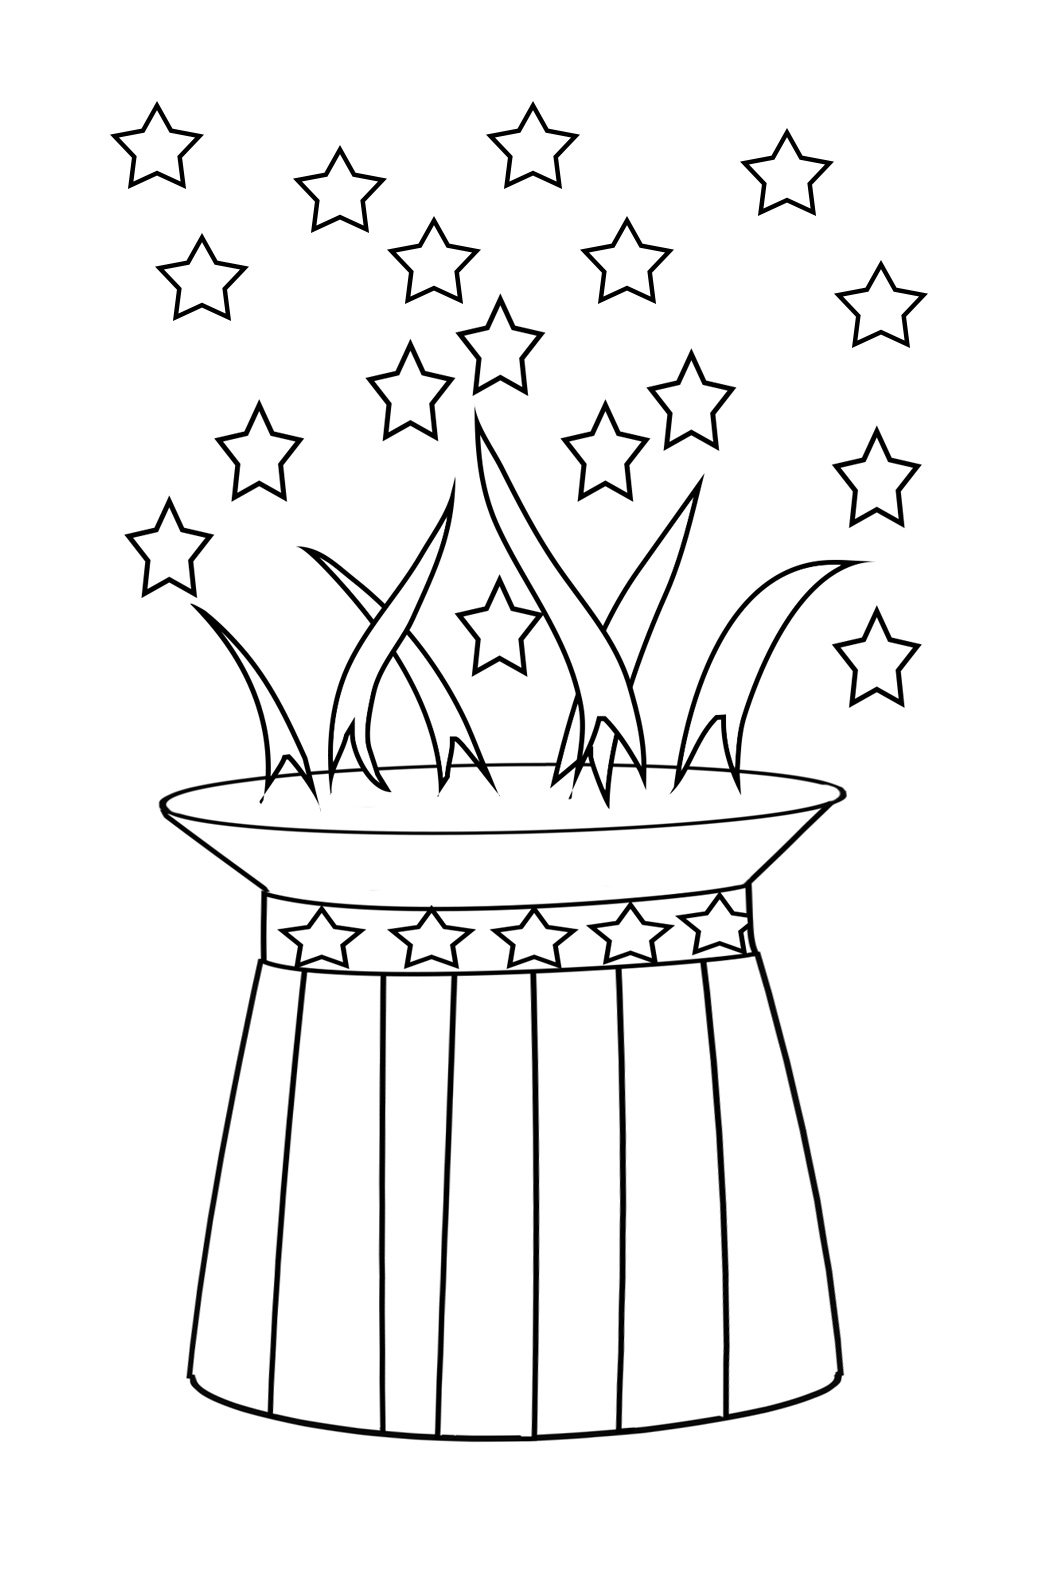 coloring page for 4th of July hat firework